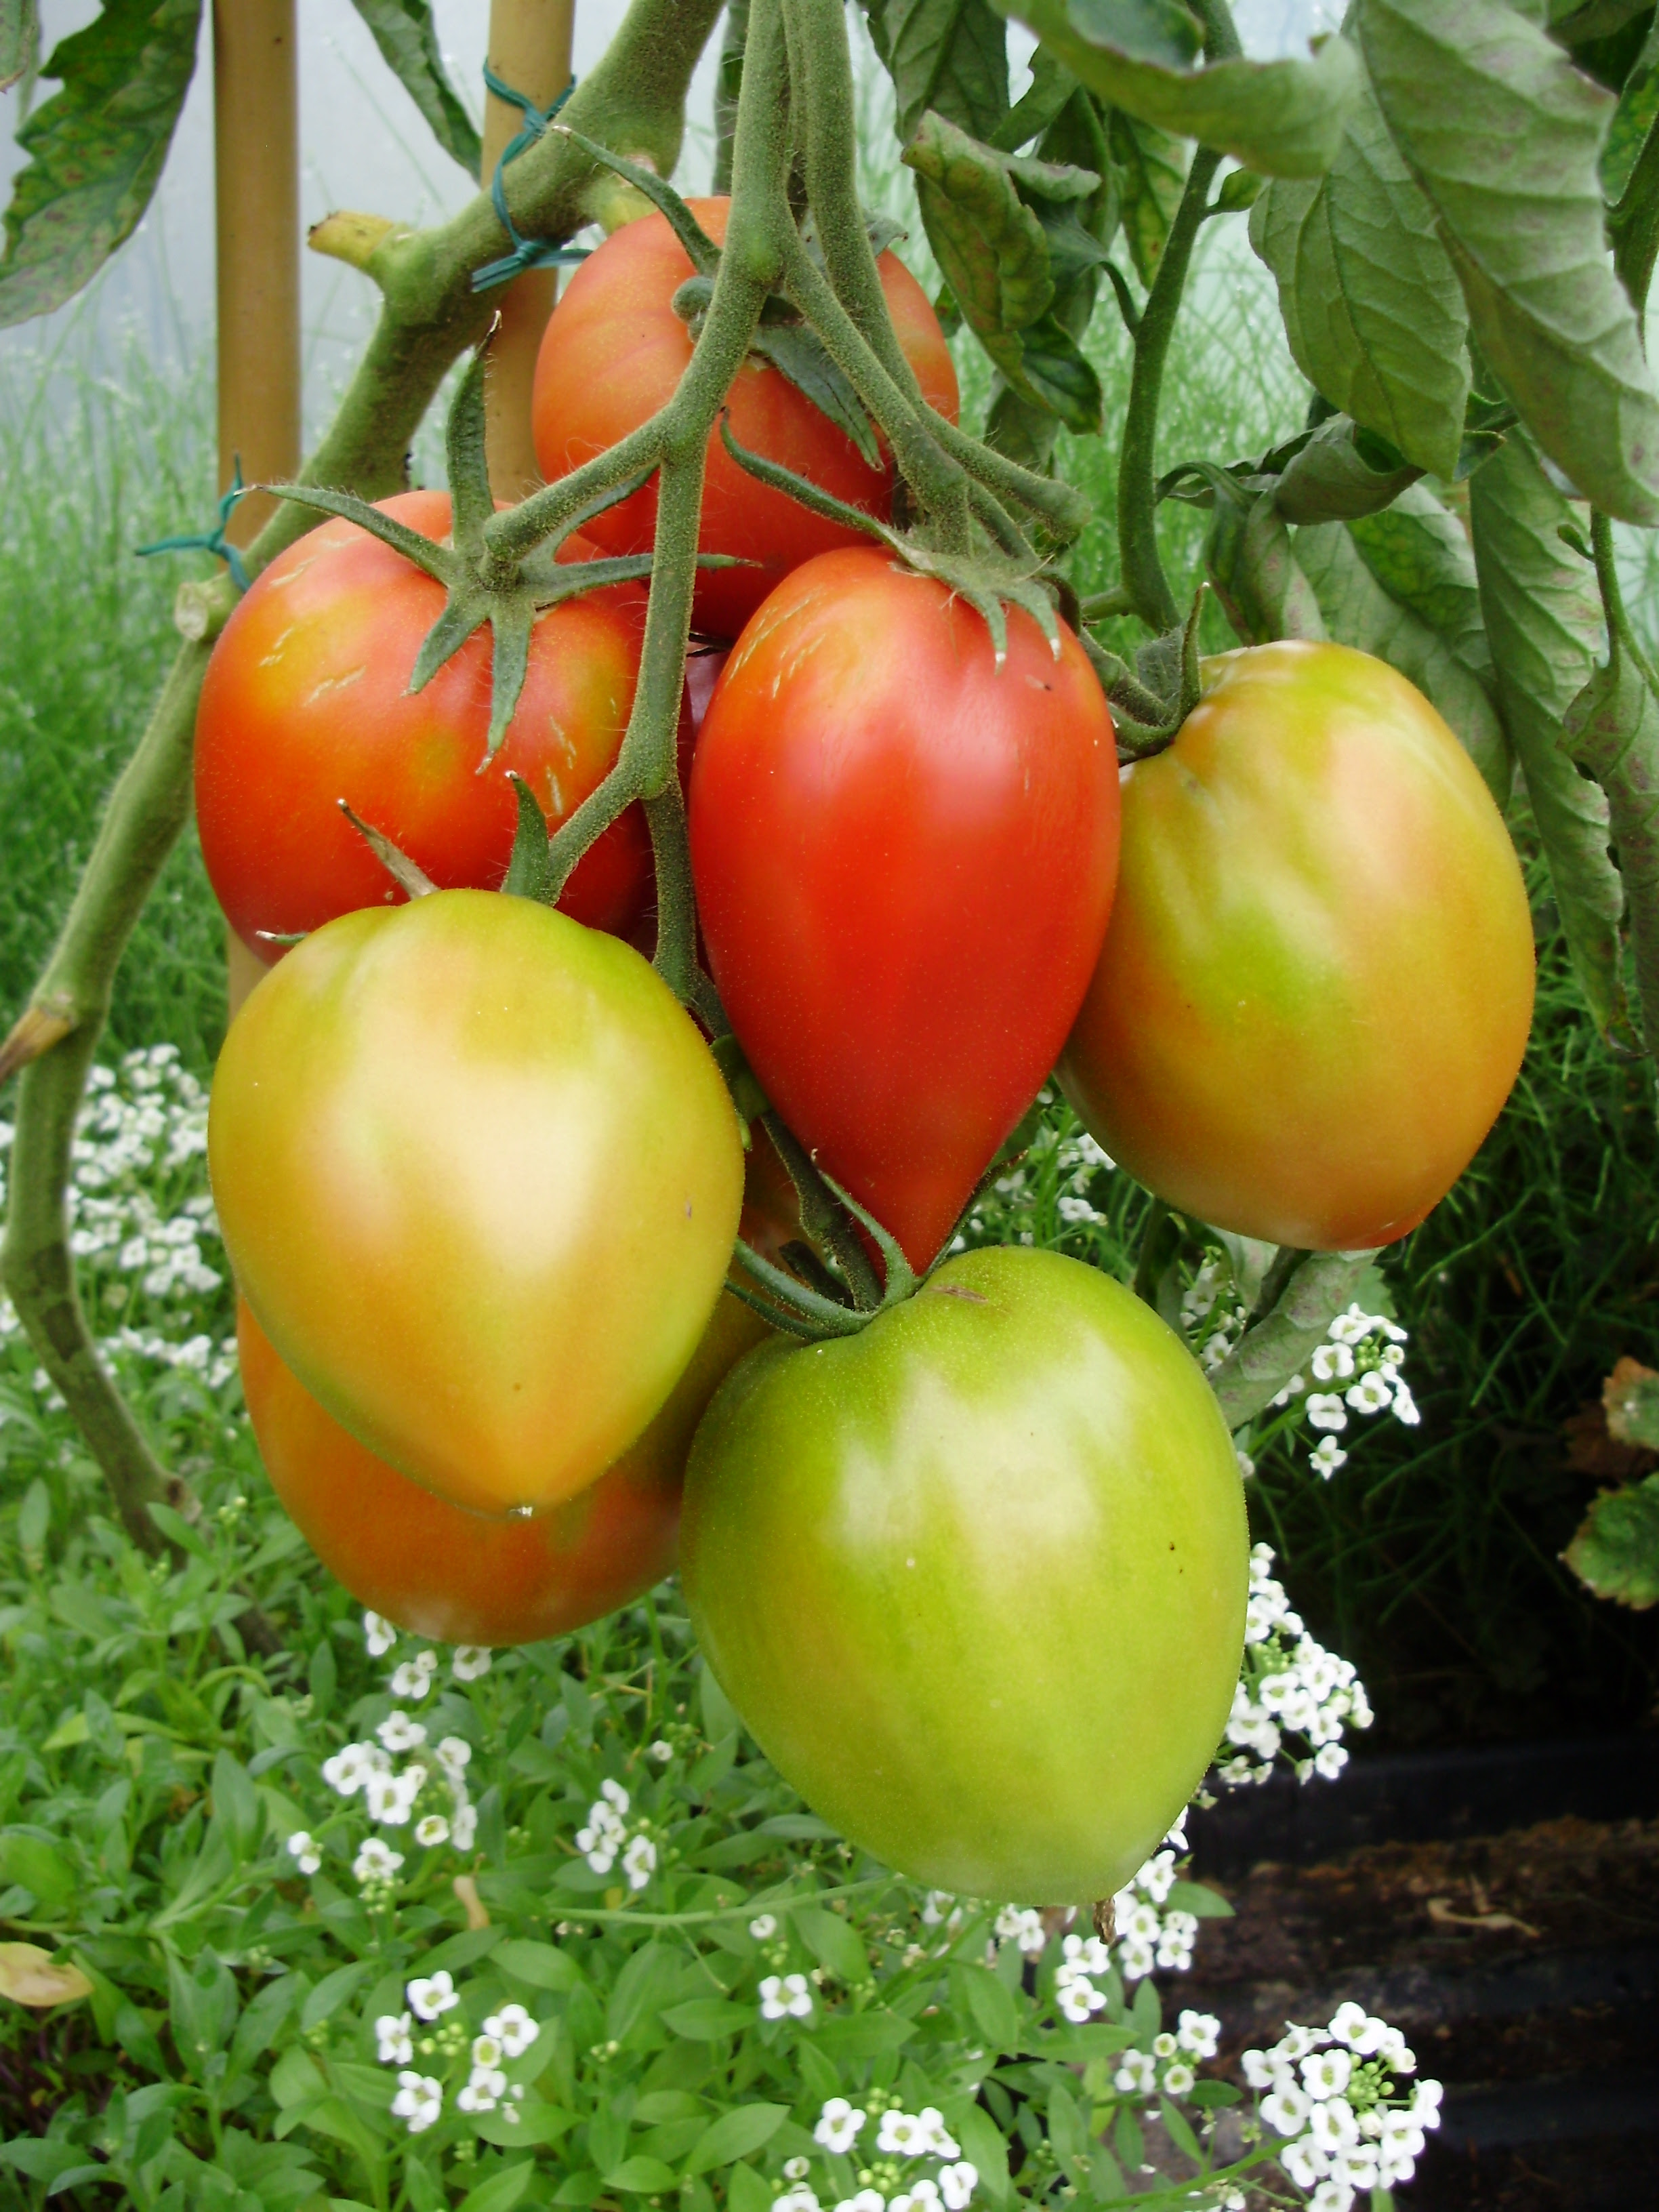 frye shoes groundhogs eat tomatoes with blight